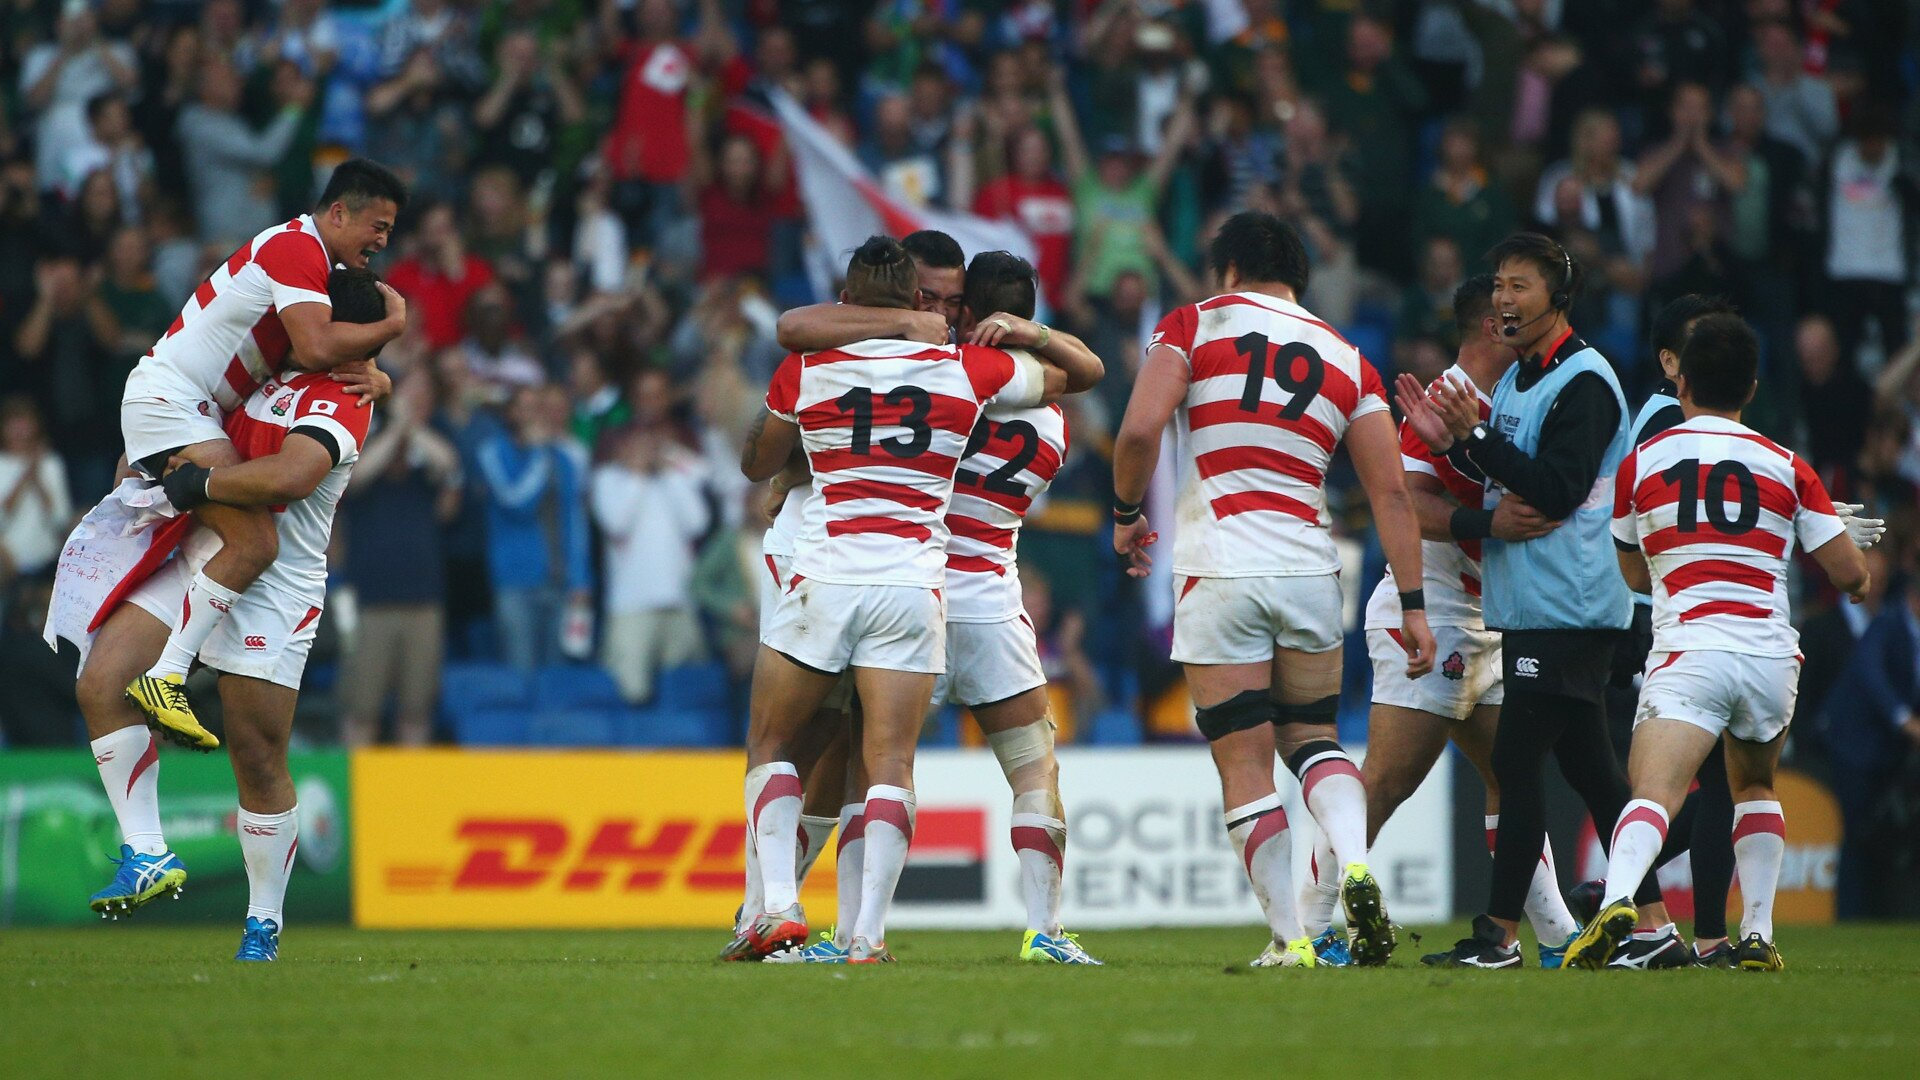 On This Day in 2015: Japan pull off biggest shock in Rugby World Cup history